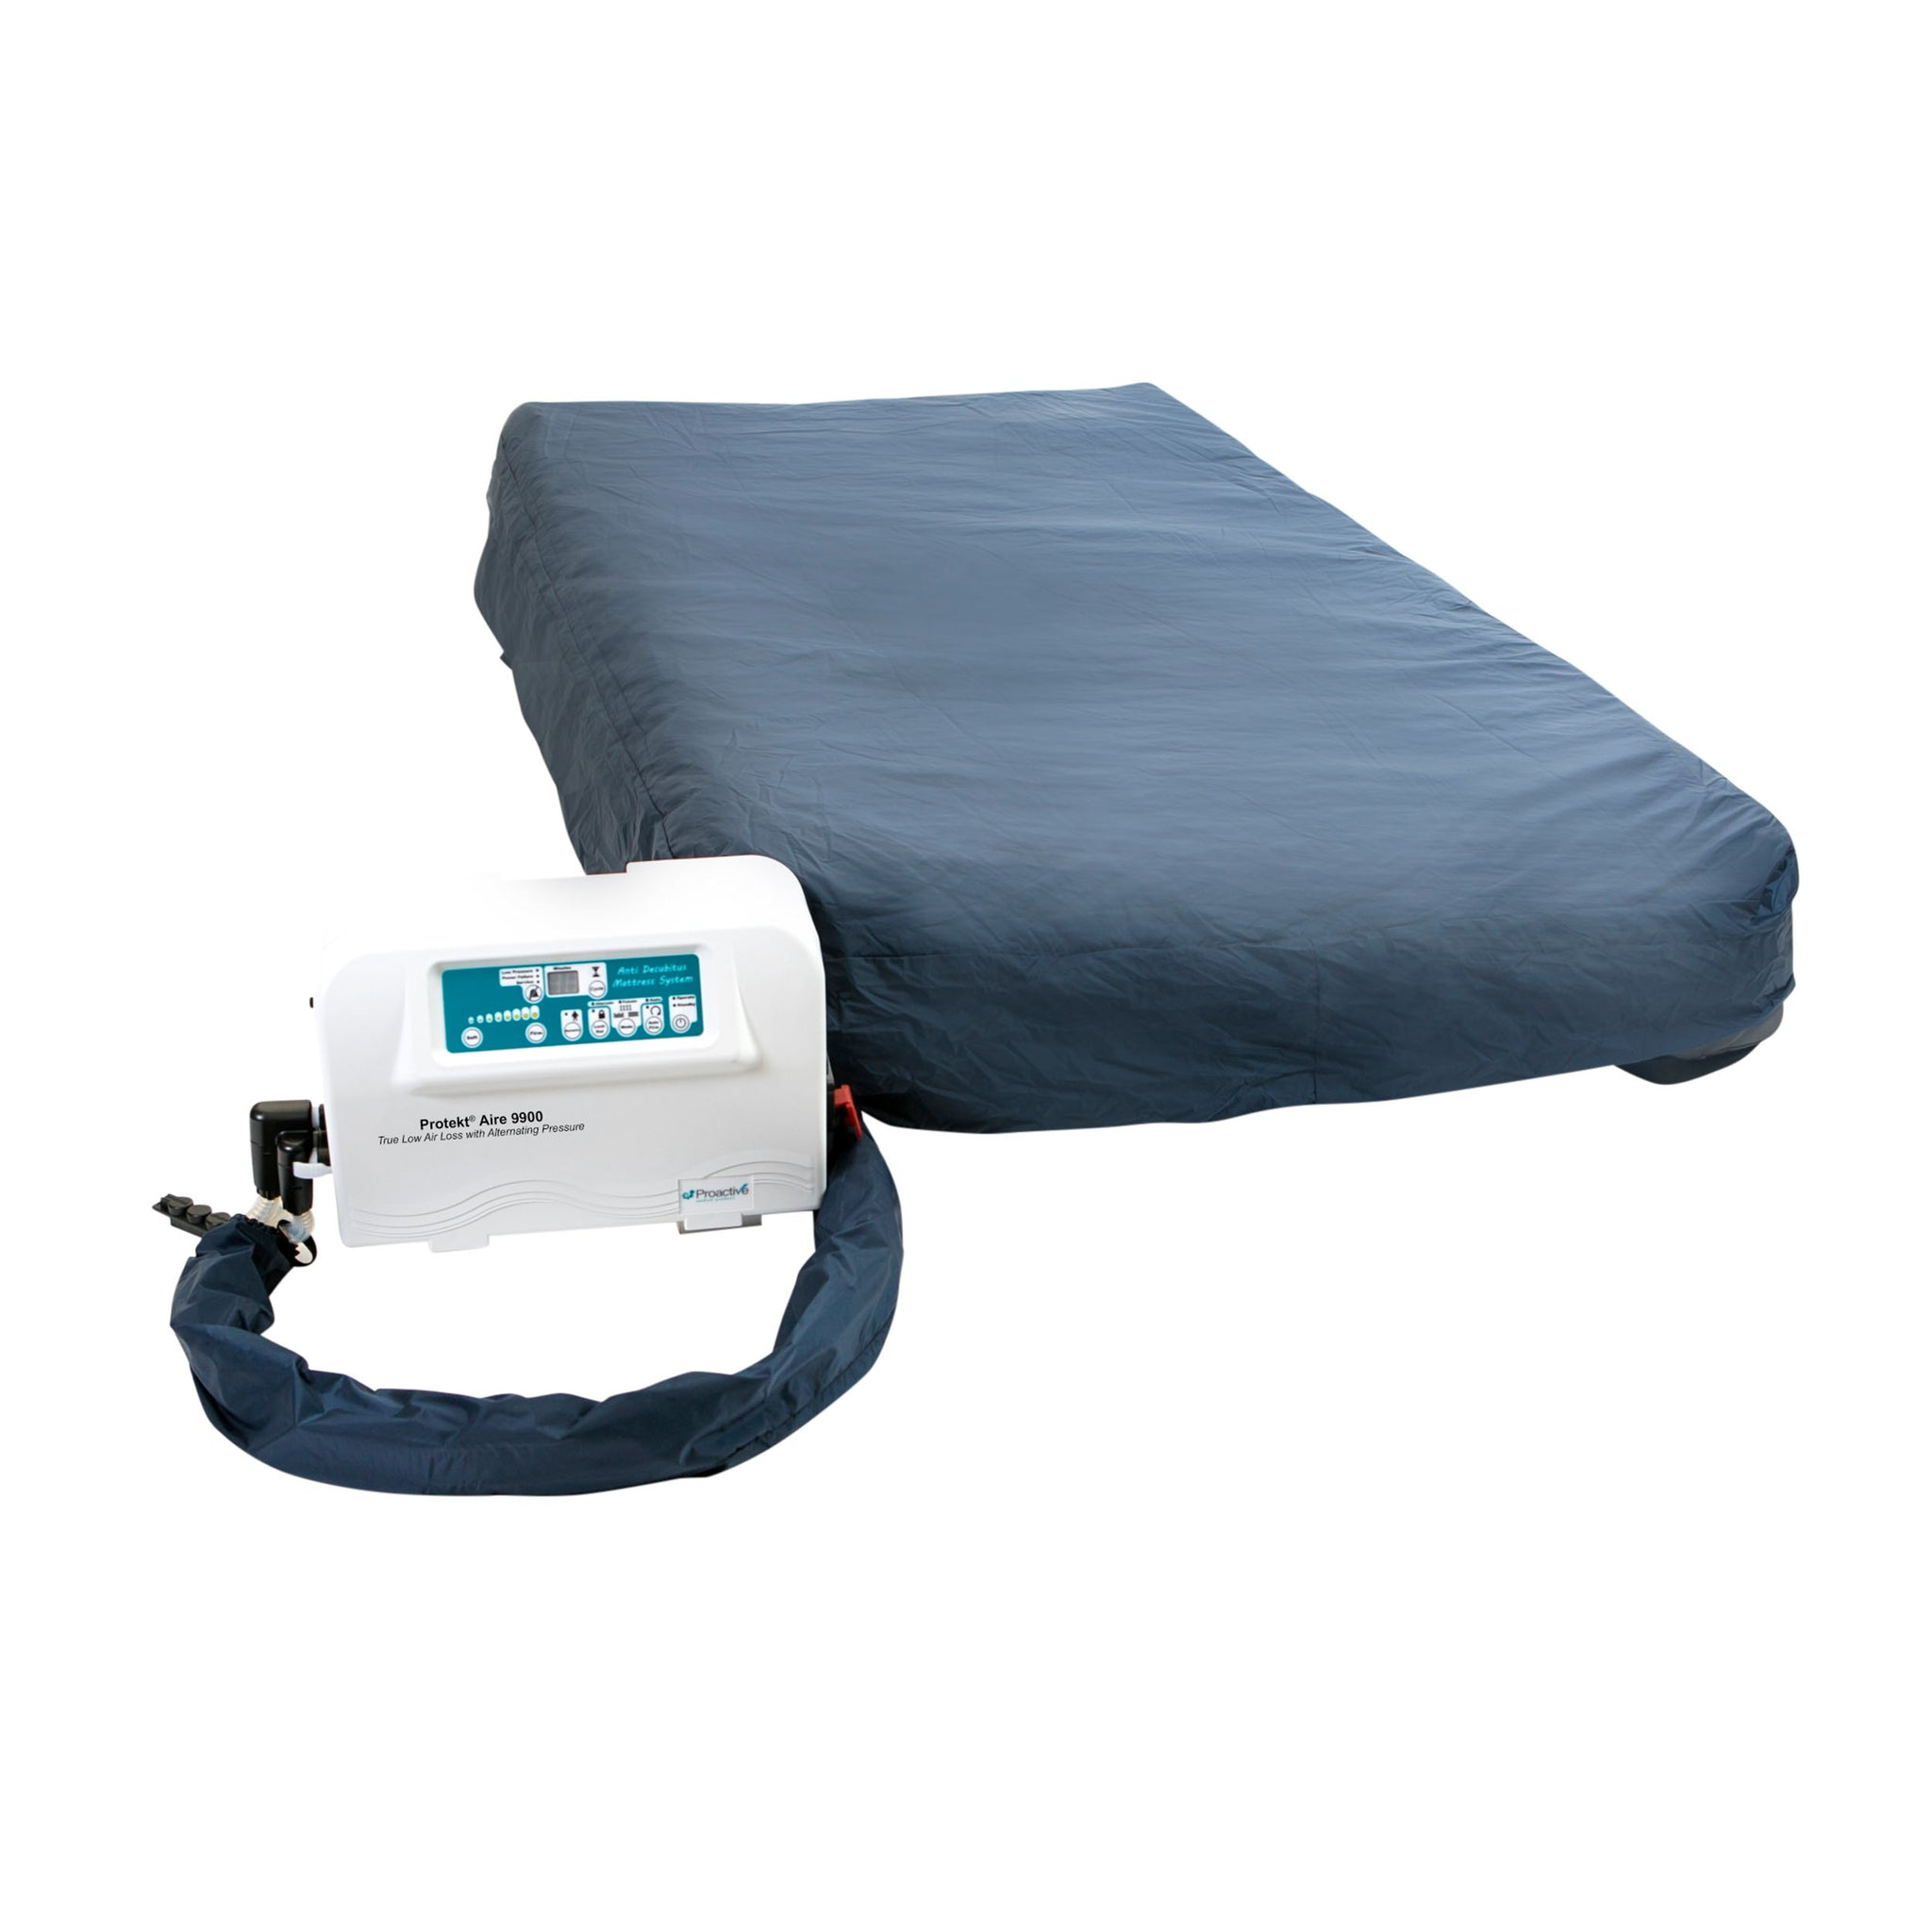 "Proactive Protekt® Aire 9900 ""True"" Low Air Loss Mattress System with Alternating Pressure"